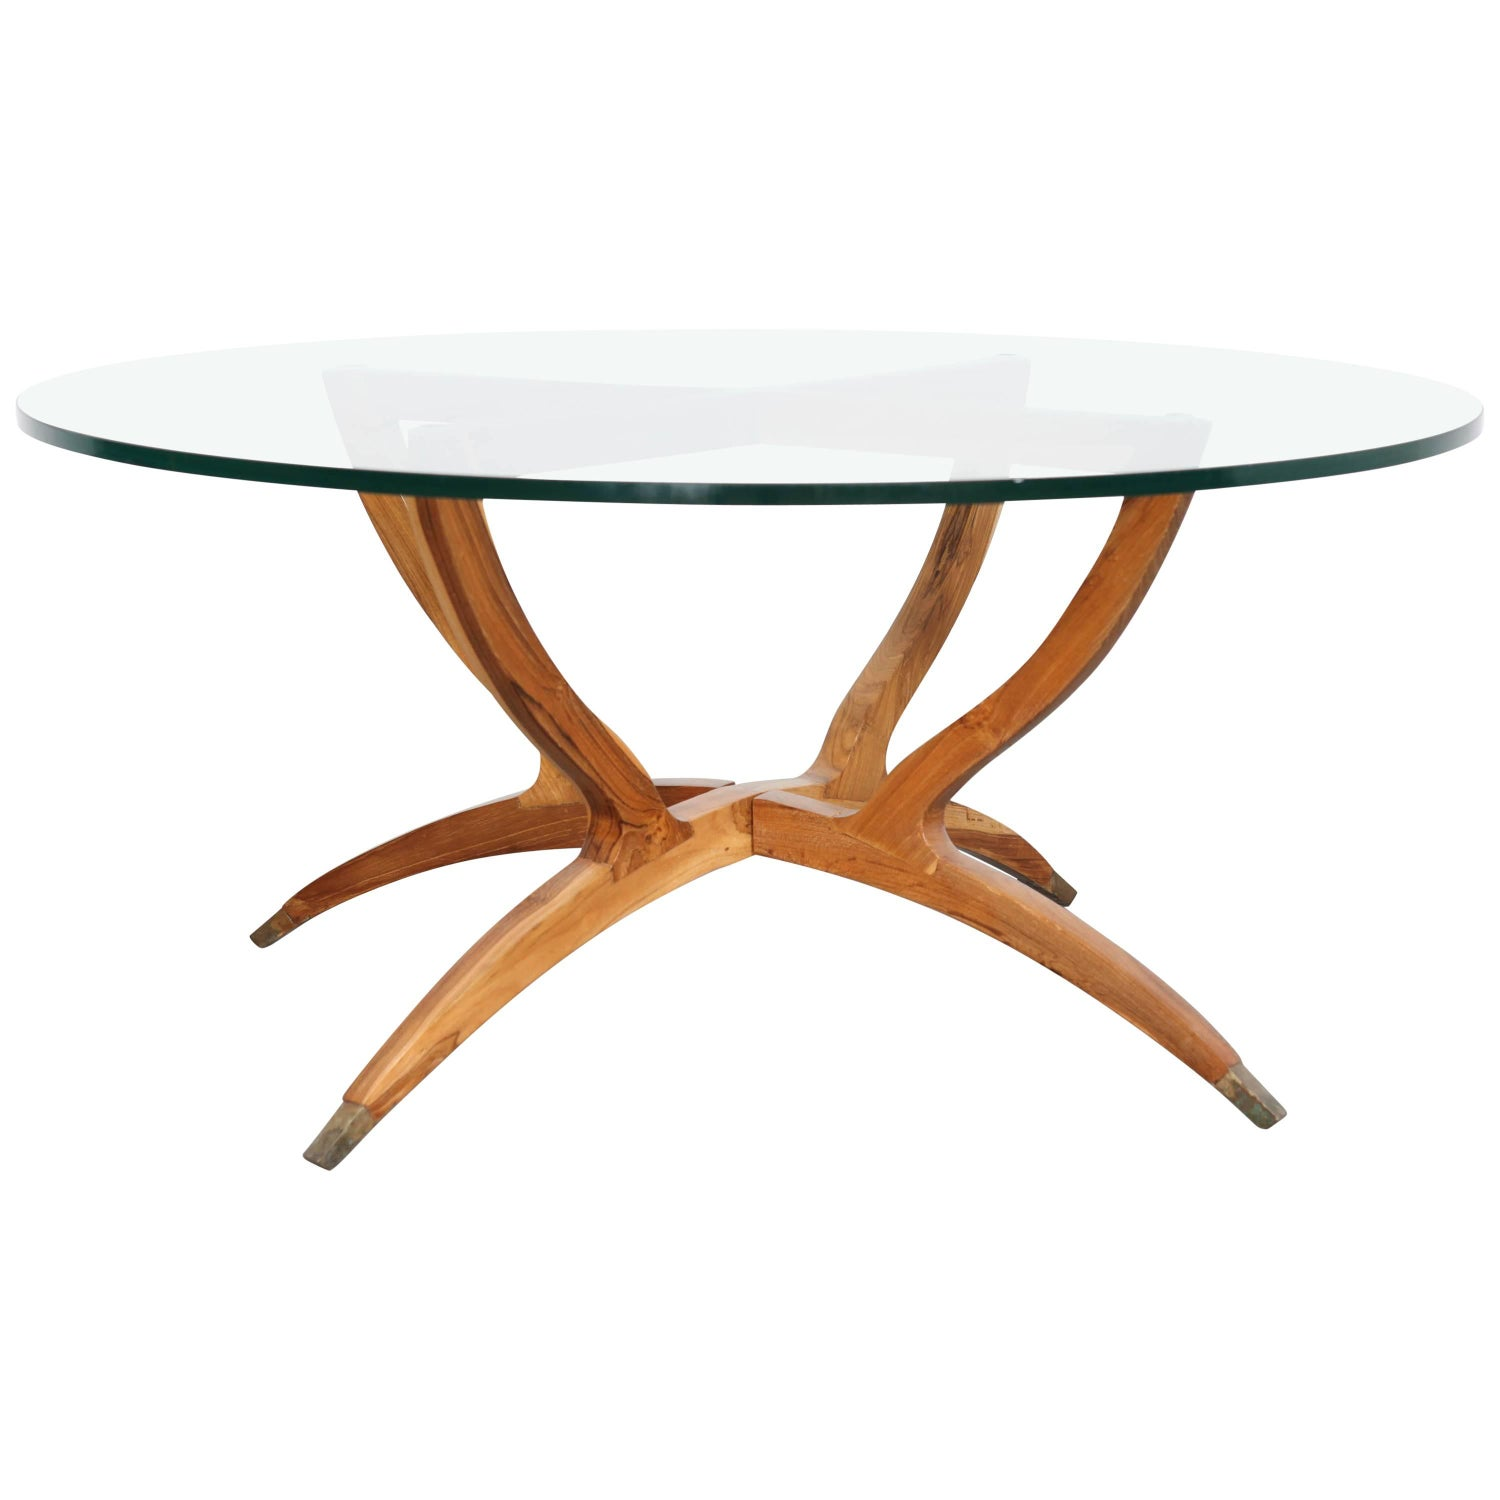 Custom Spider Leg Round Coffee Table with Glass Top For Sale at